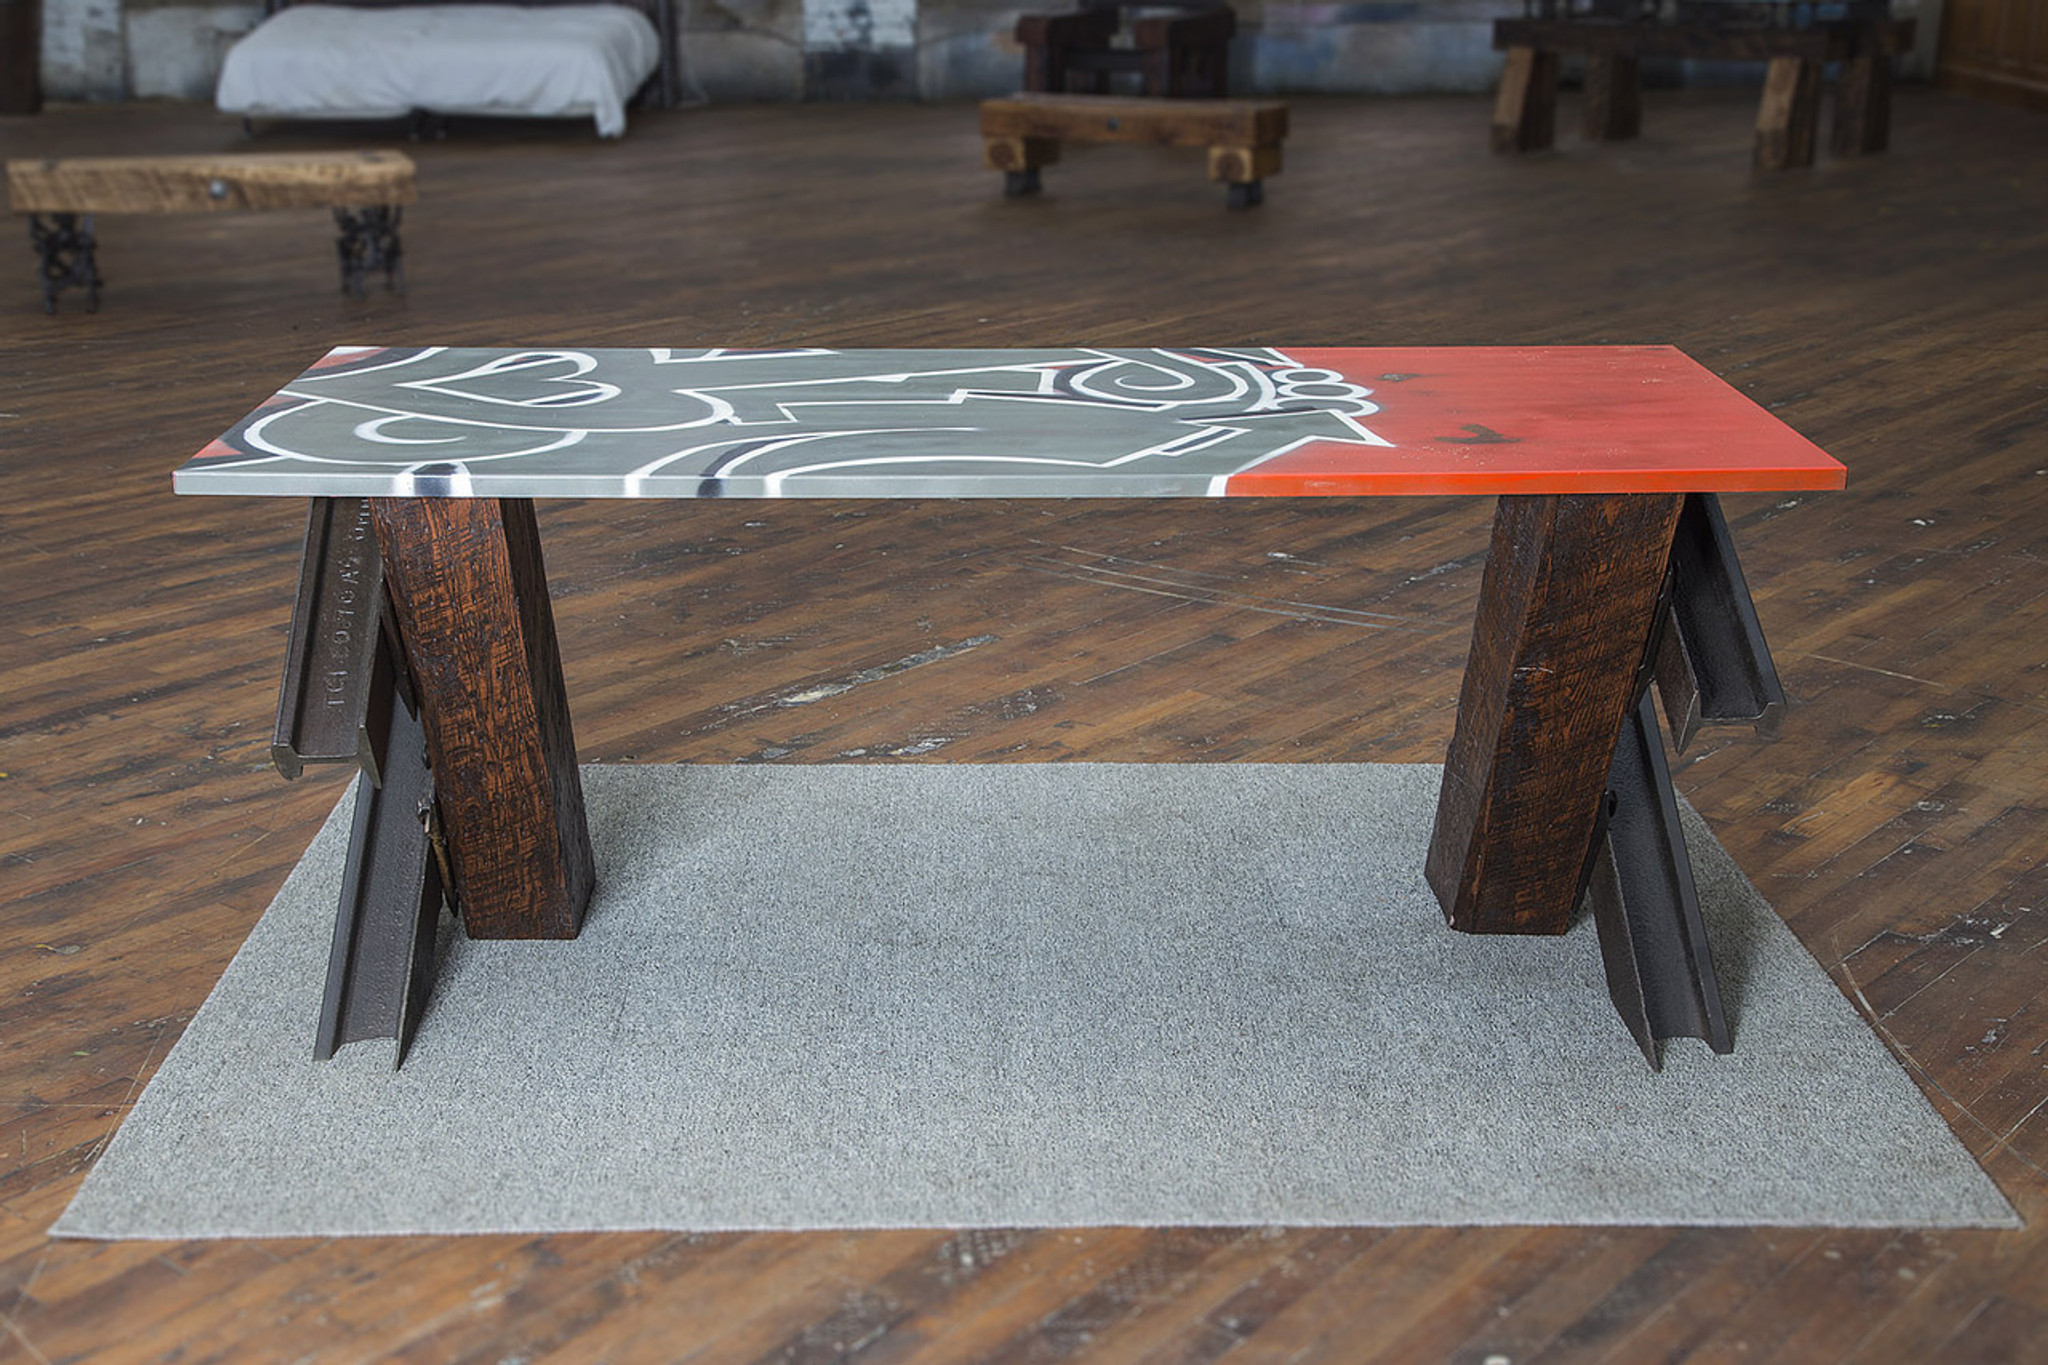 asymmetrical spray paint graffiti tabletop on modern design wood and style